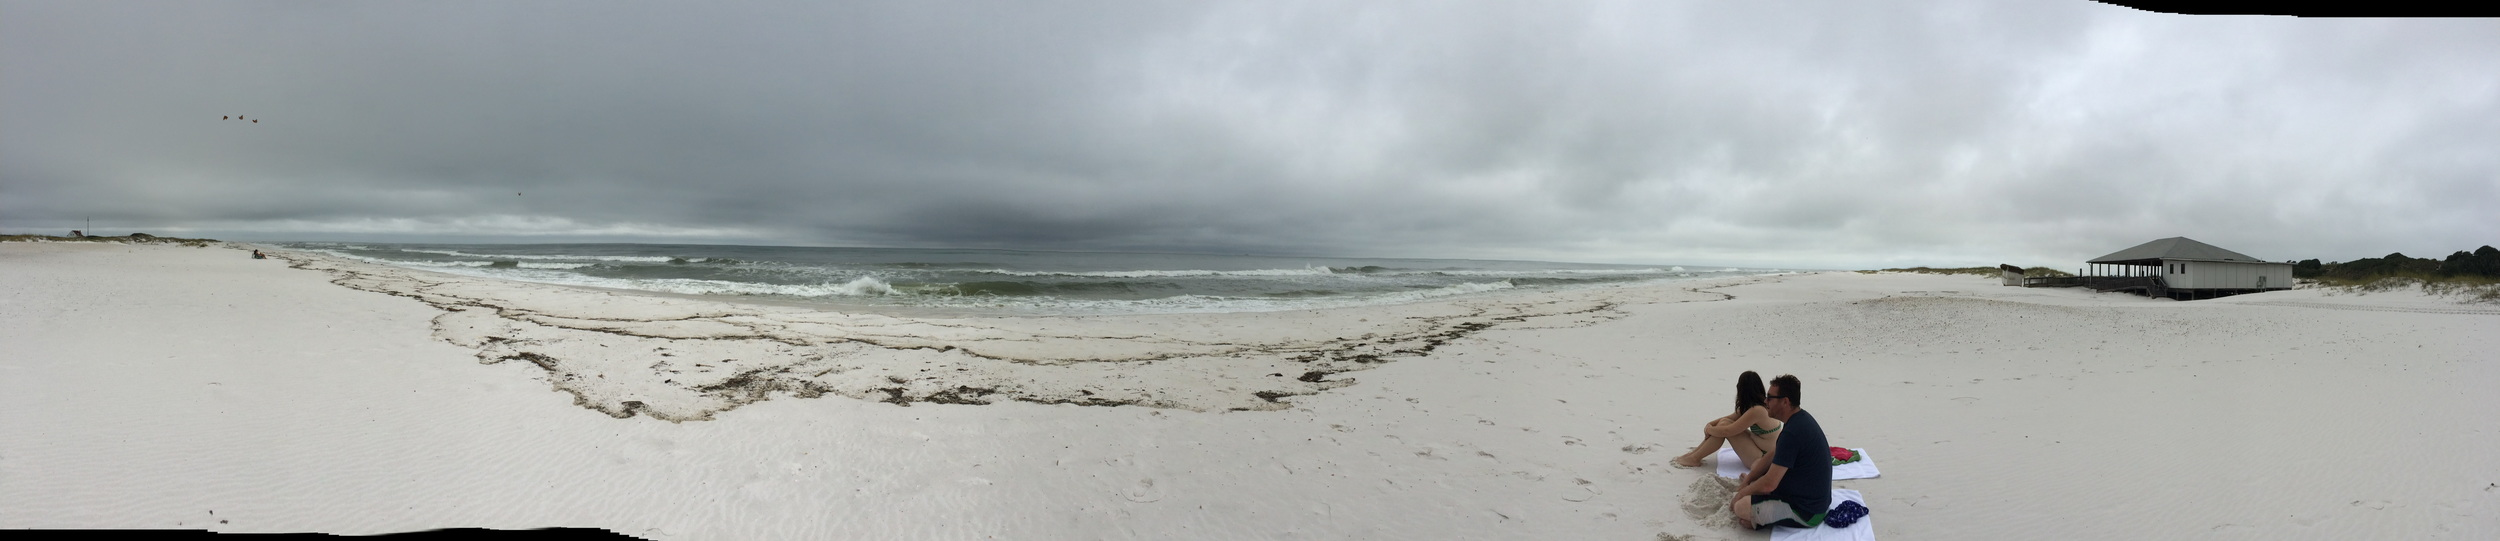 Rob Schiffmann and Rachel Dart at Gulf Islands National Seashore